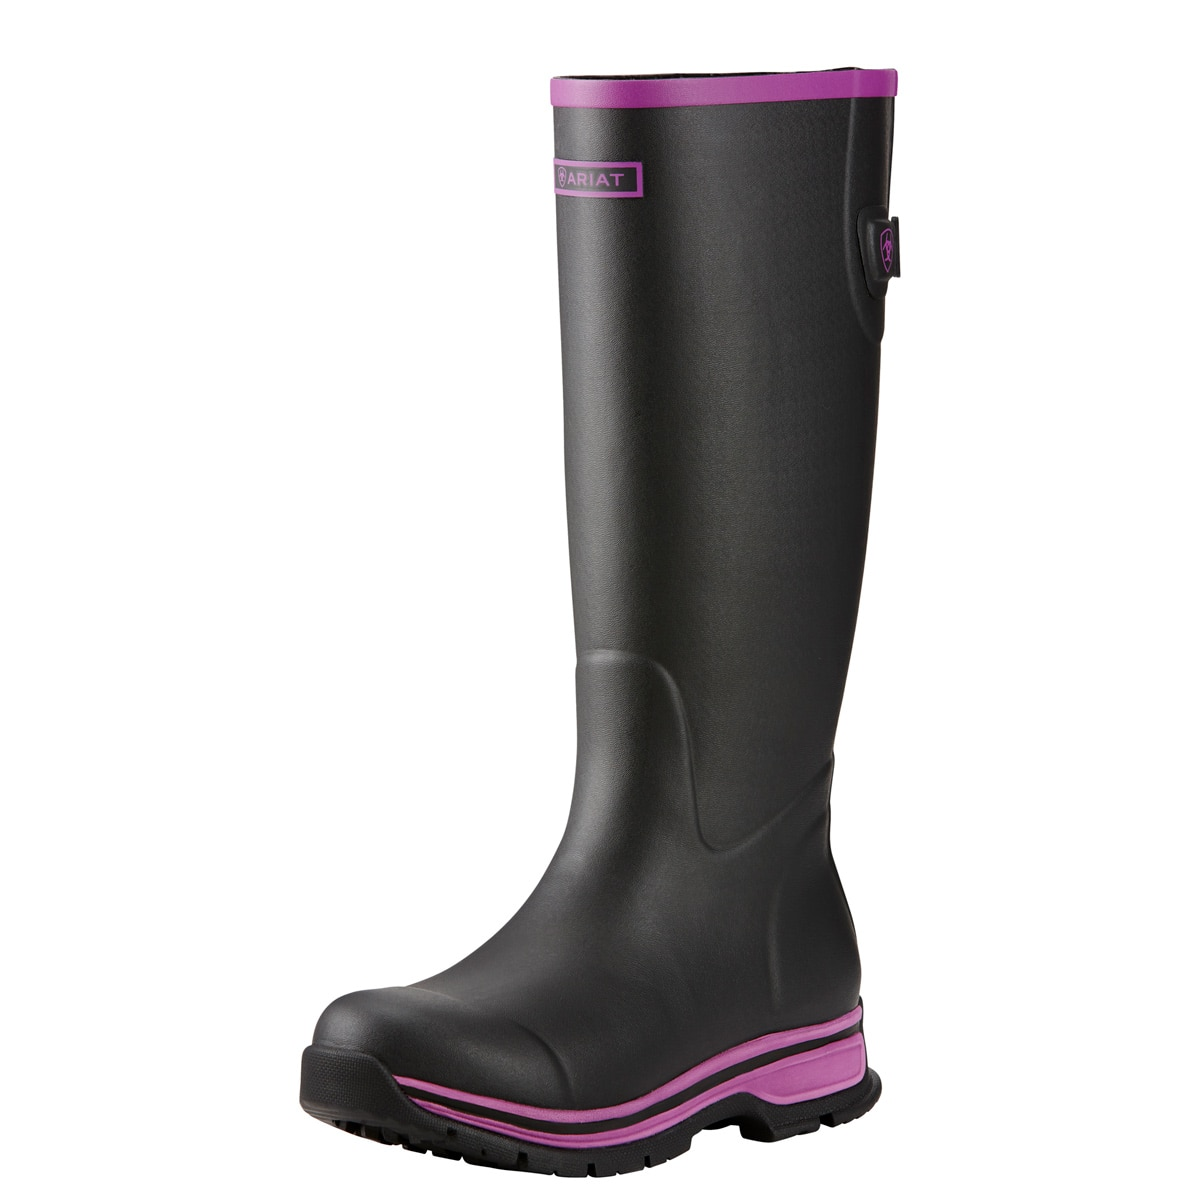 Ariat Fernlee Rubber Boot